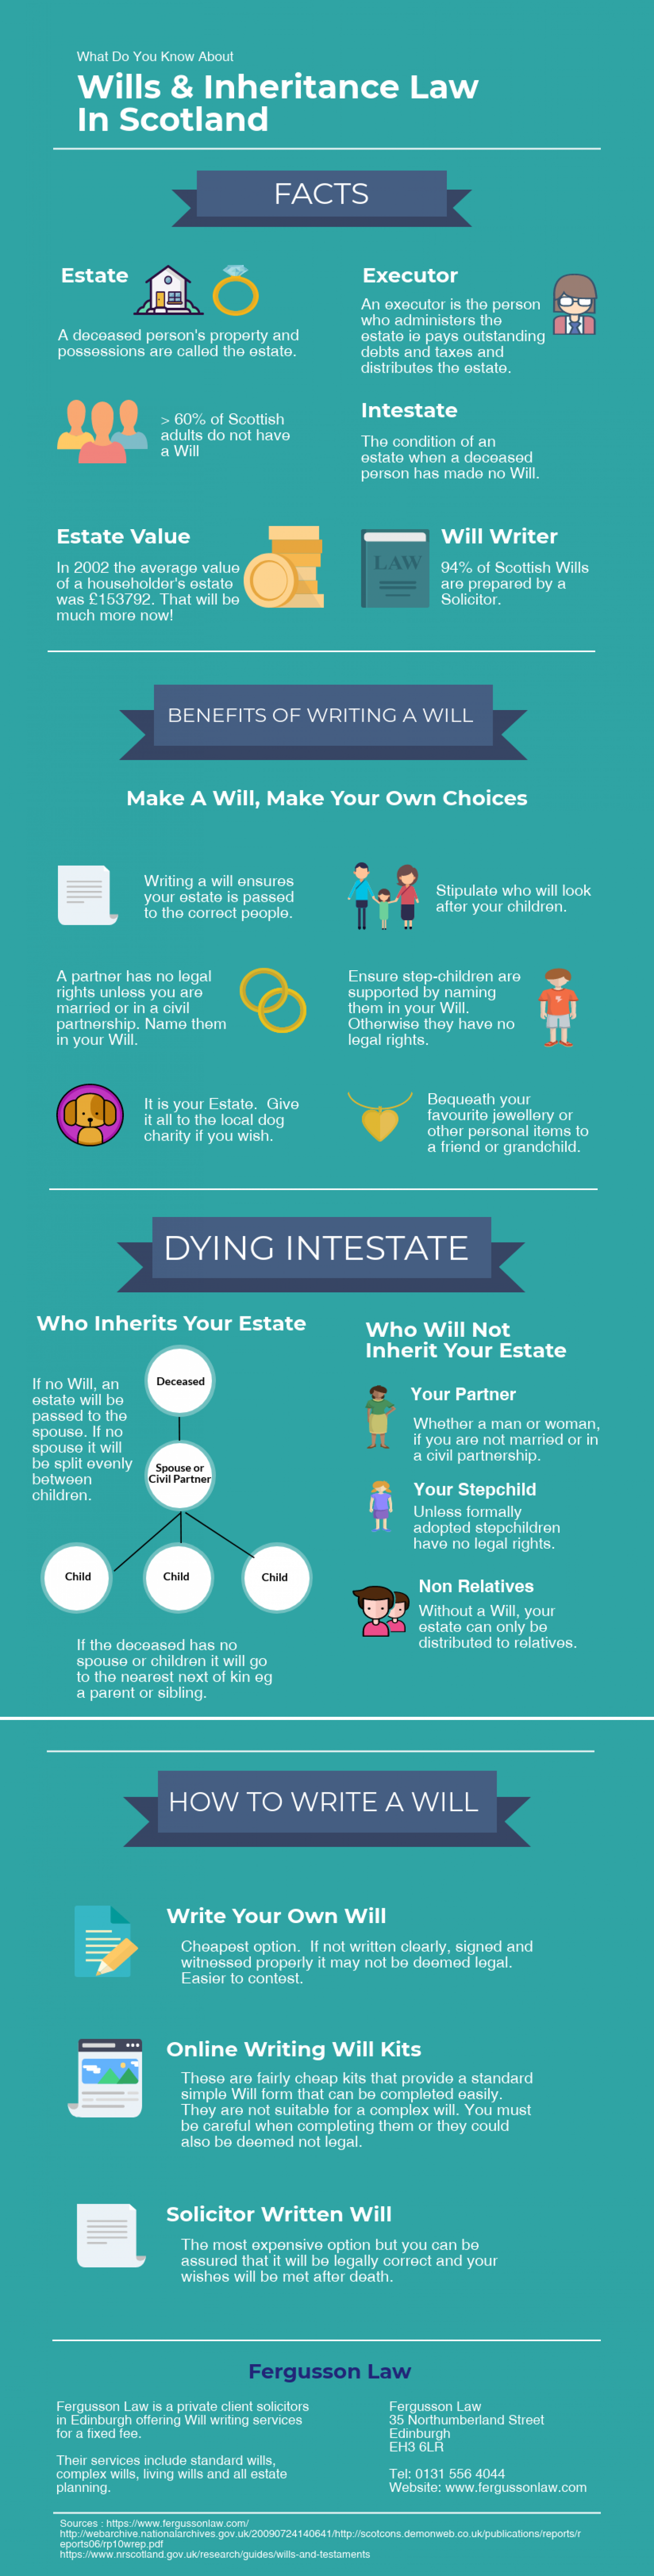 What Do You Know About Wills And Inheritance In Scotland? Infographic